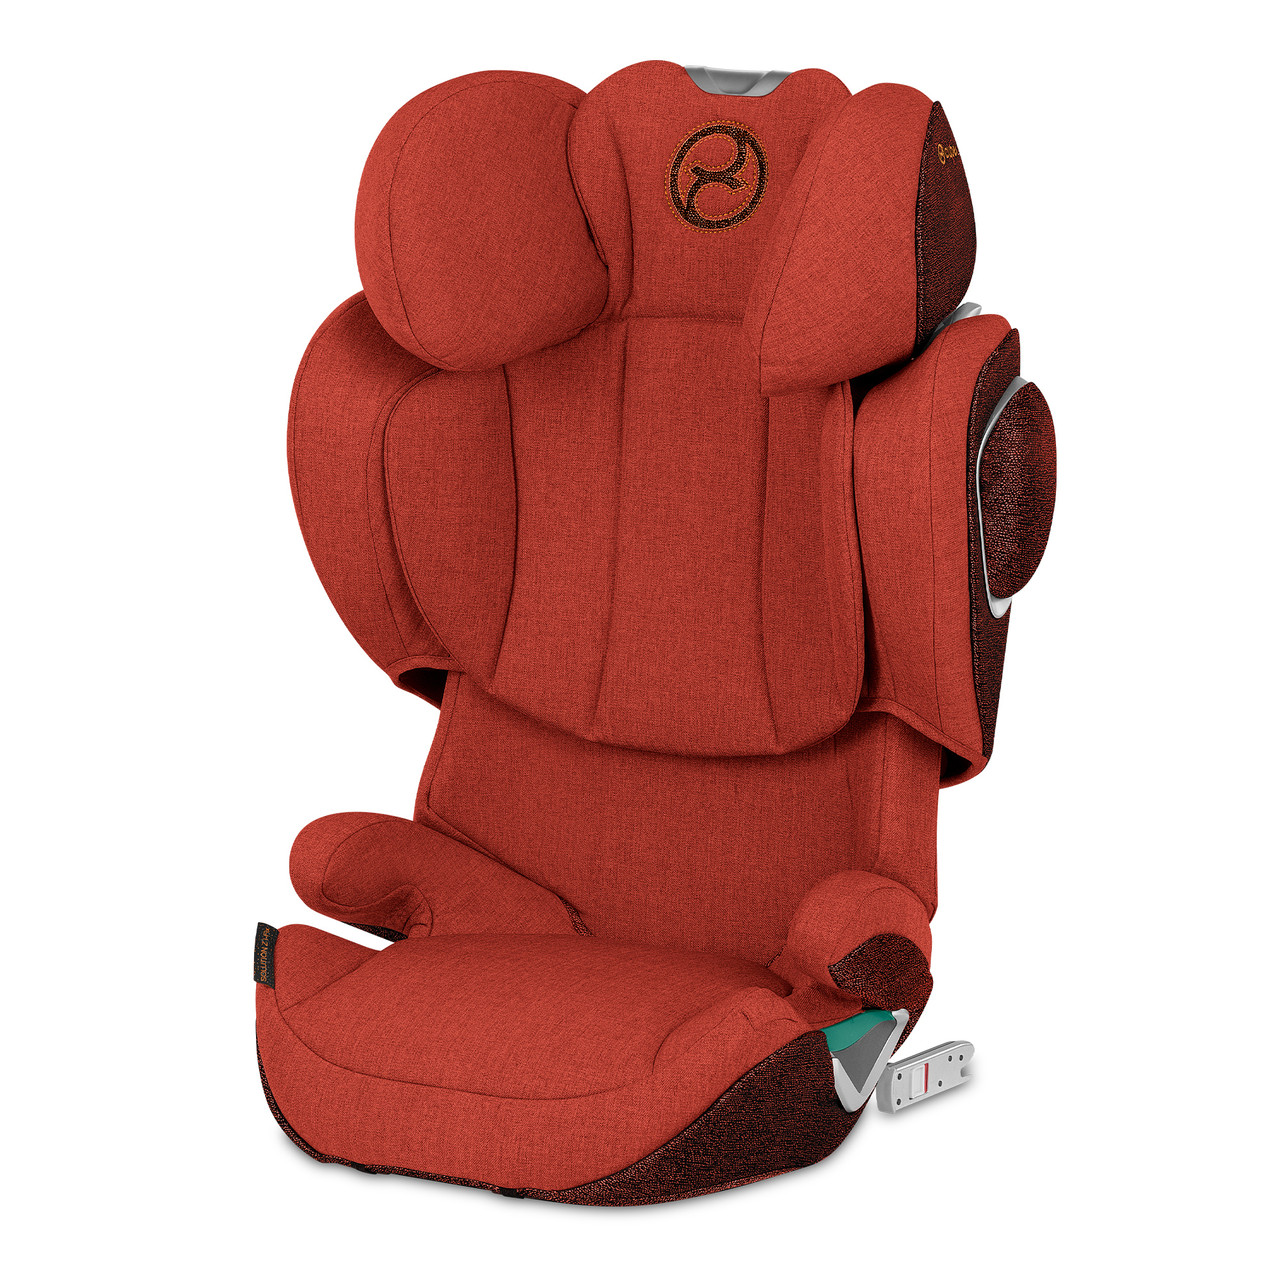 Автокресло Cybex Solution Z i-Fix Plus Autumn Gold burnt red